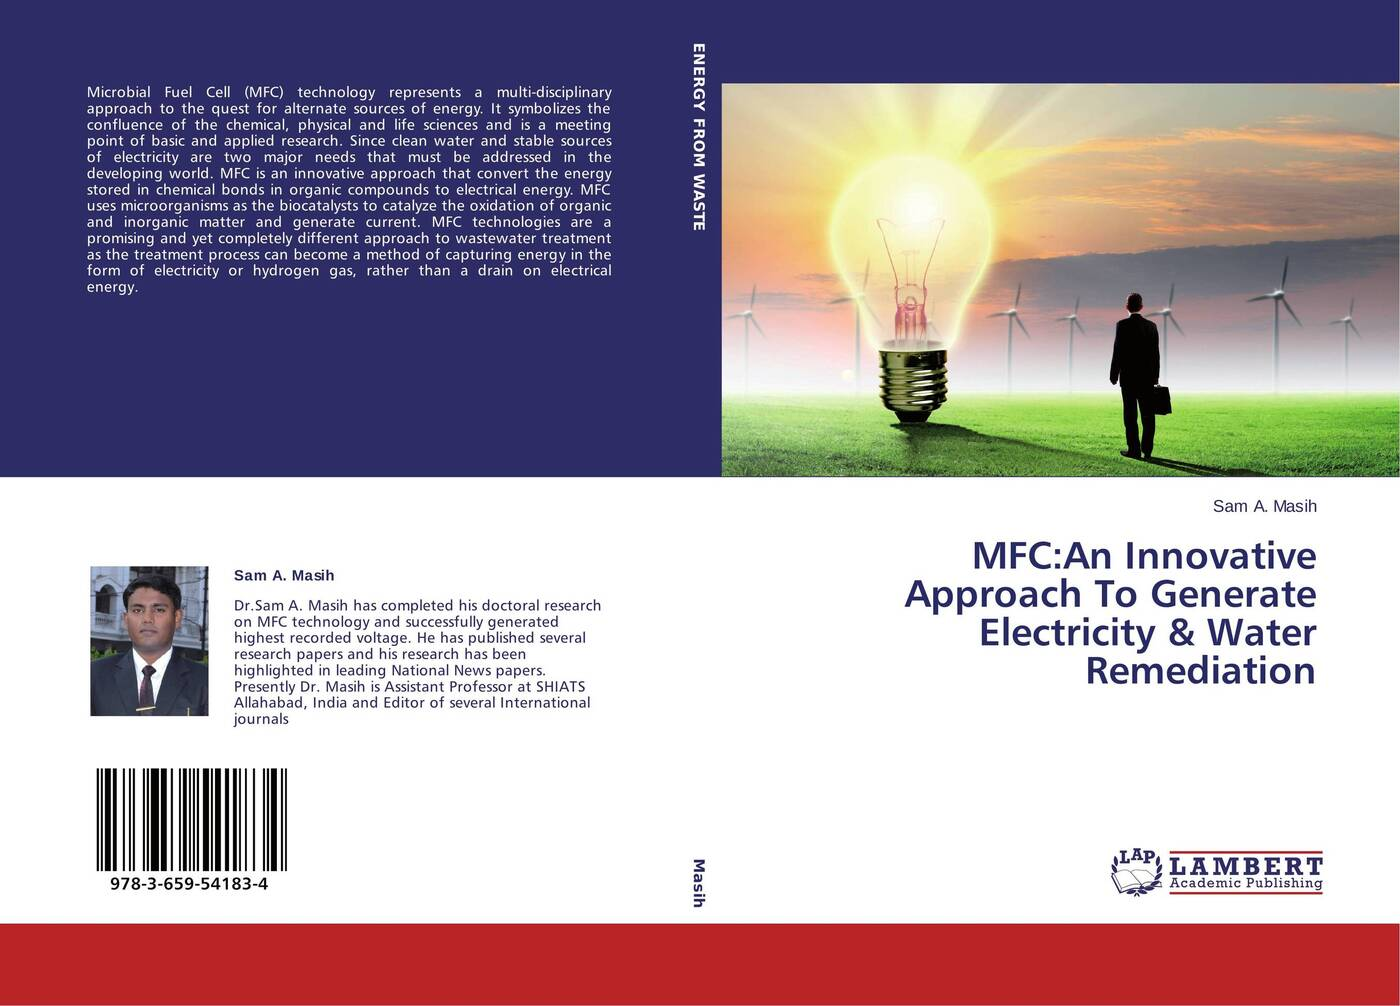 Sam A. Masih MFC:An Innovative Approach To Generate Electricity & Water Remediation the step of the step of the piezoelectric generator is to generate electricity